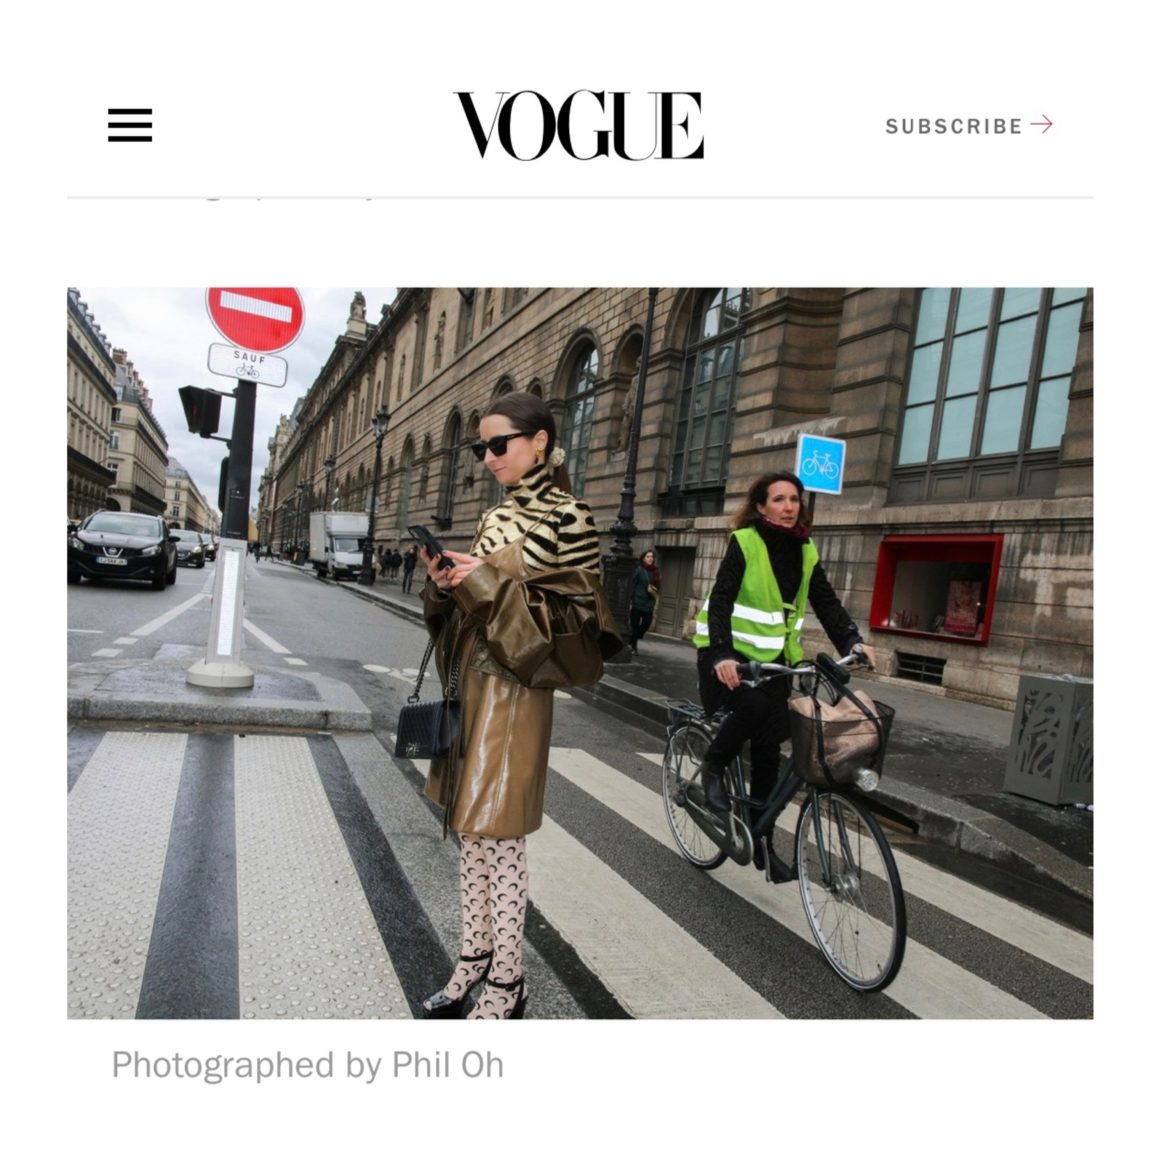 Vogue Magazine Vogue US captured by Phil Oh Julia Comil wearing kristina fidelskaya, Paco Rabanne, Marine Serre Paris Fashion Week